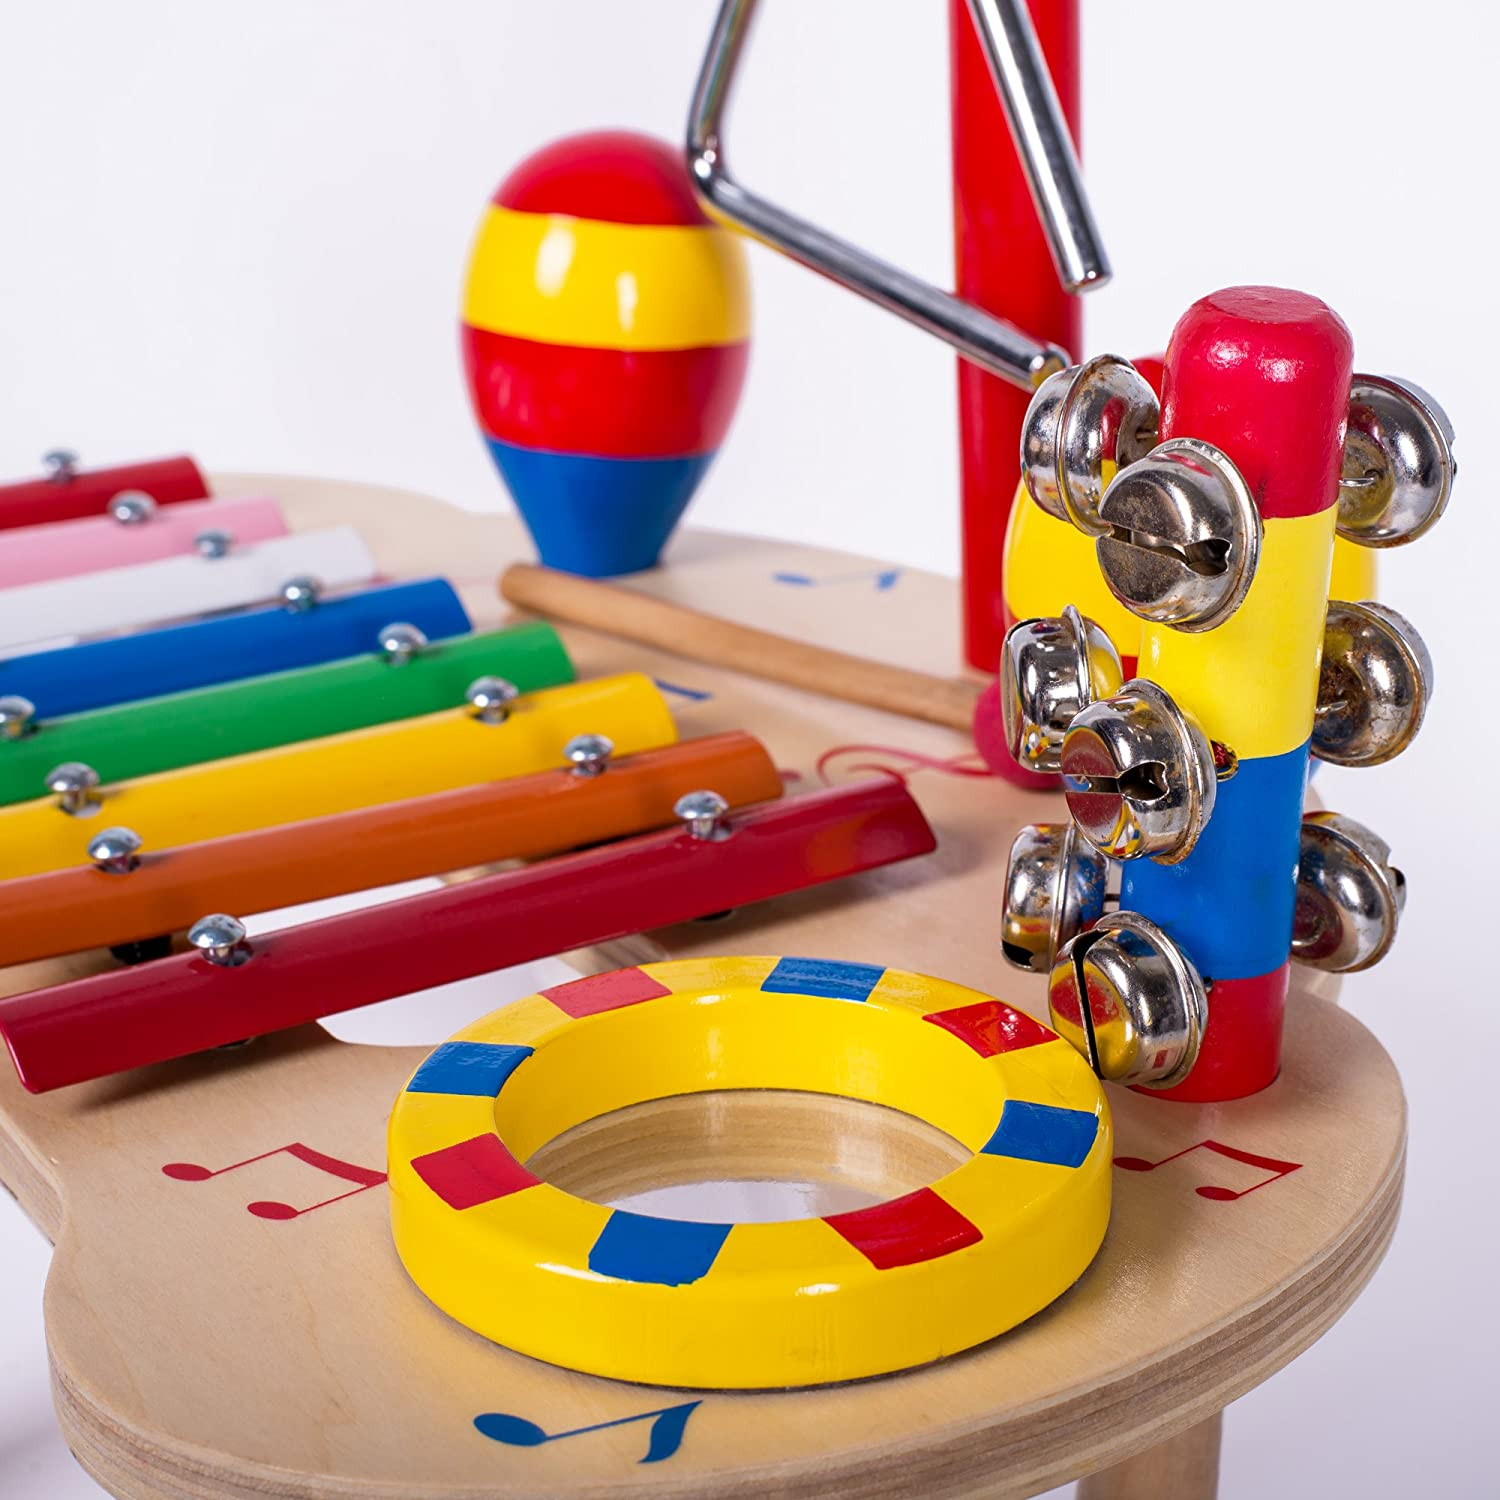 Amazon Musical Instruments 6 in 1 Toy Set for Children of All